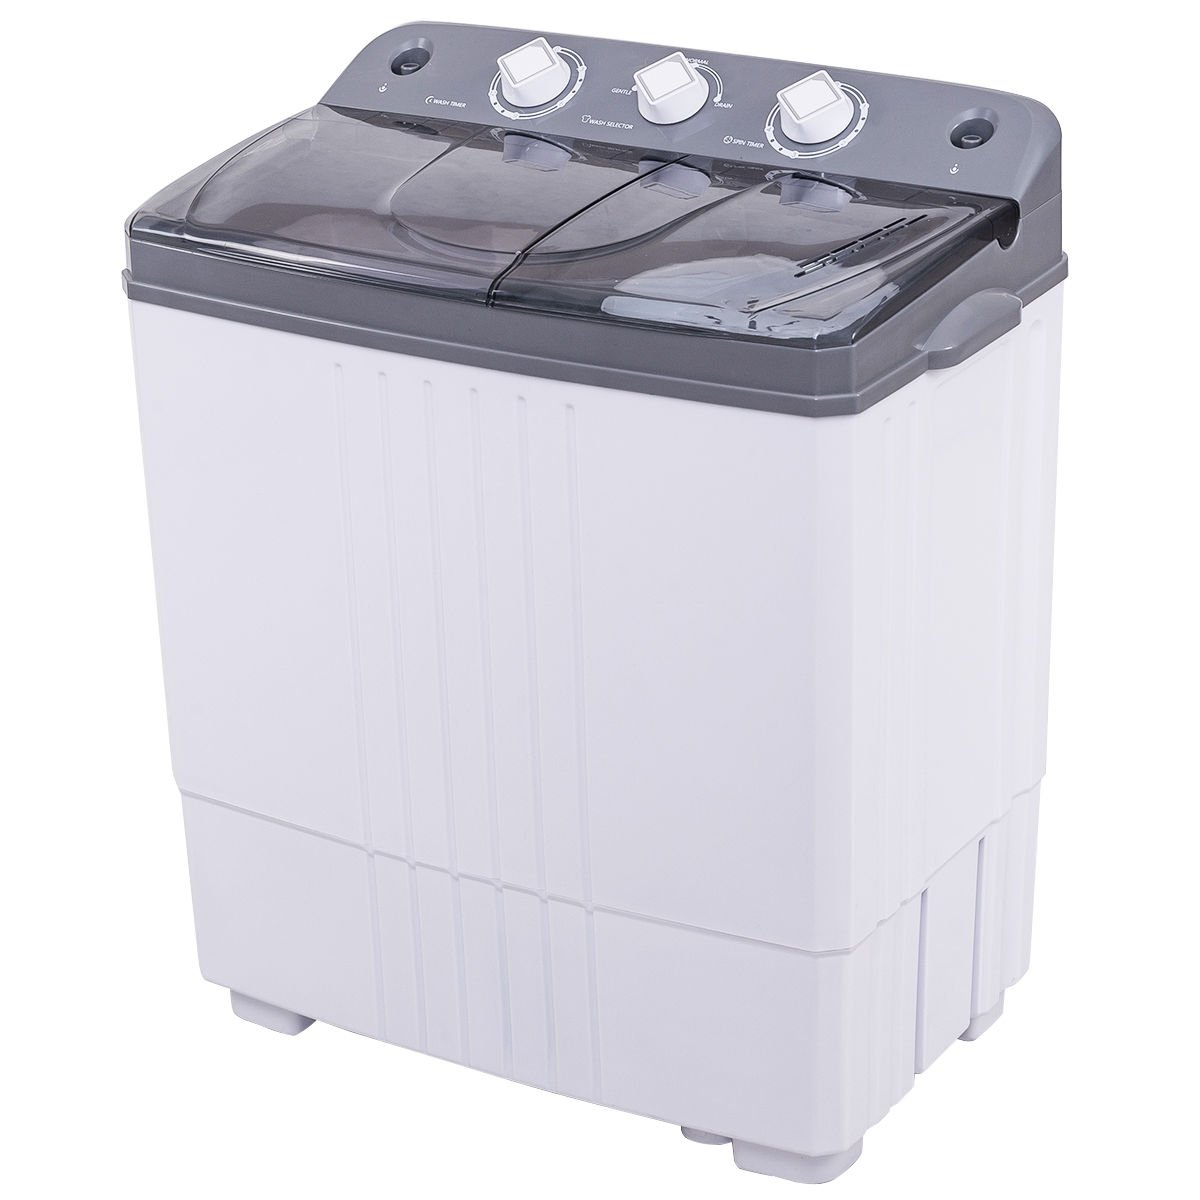 COSTWAY Twin Tub Washing Machine Electric Compact Portable Durable Design Washer 16Lbs Capacity Energy Saving, Rotary Controller and Washer Spin Dryer with Hose (Grey and White)